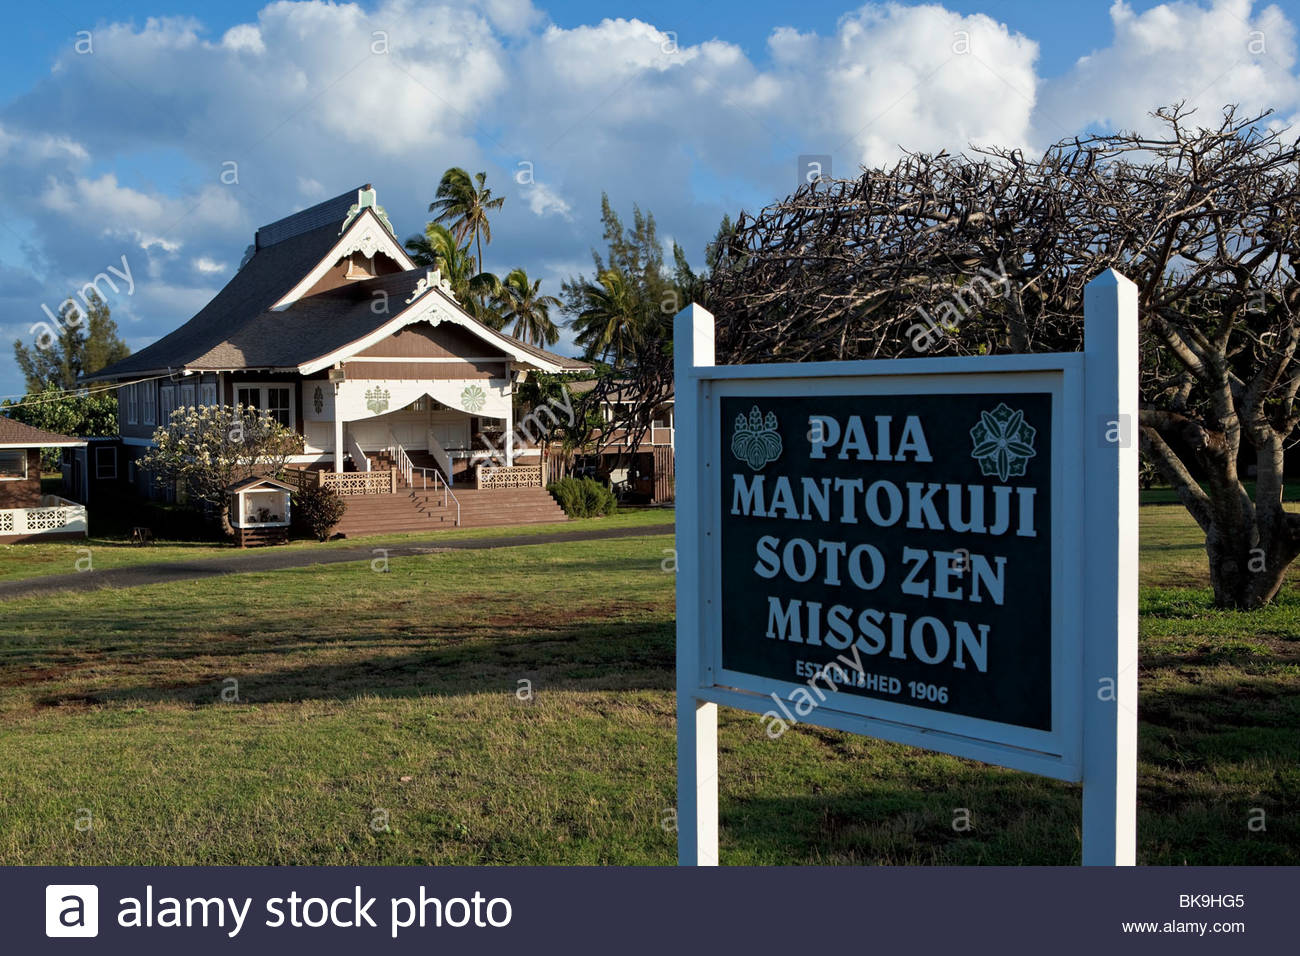 Mantokuji Soto Zen Mission in the town of Paia on the island of Maui in the State of Hawaii USA - Stock Image